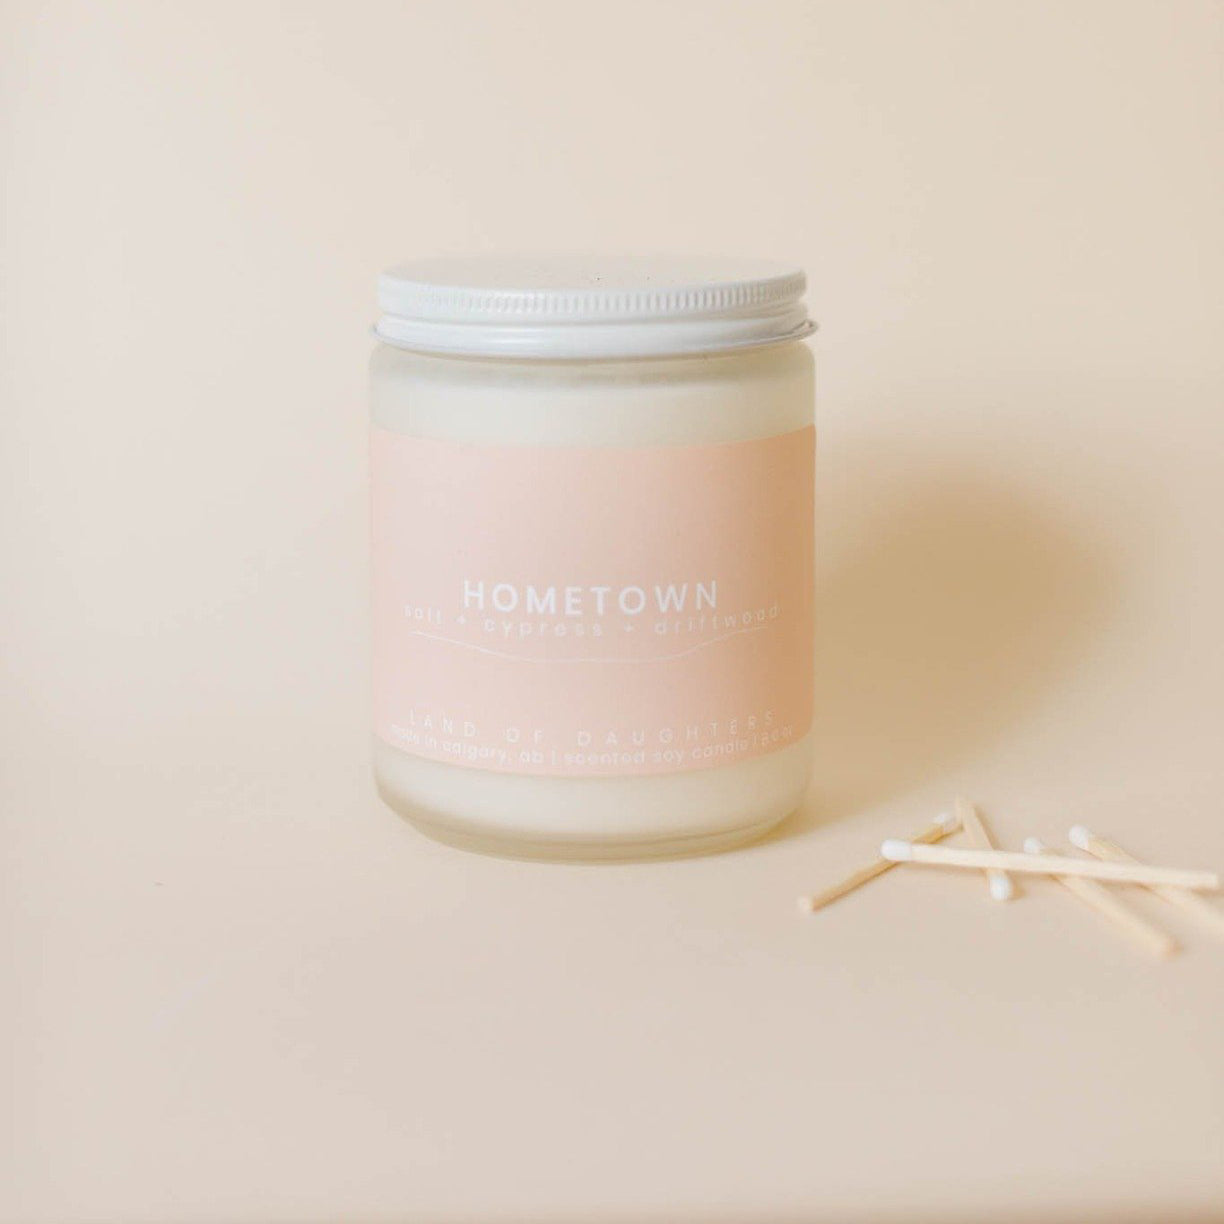 hometown (salt + cypress + driftwood) - all natural organic scented candle